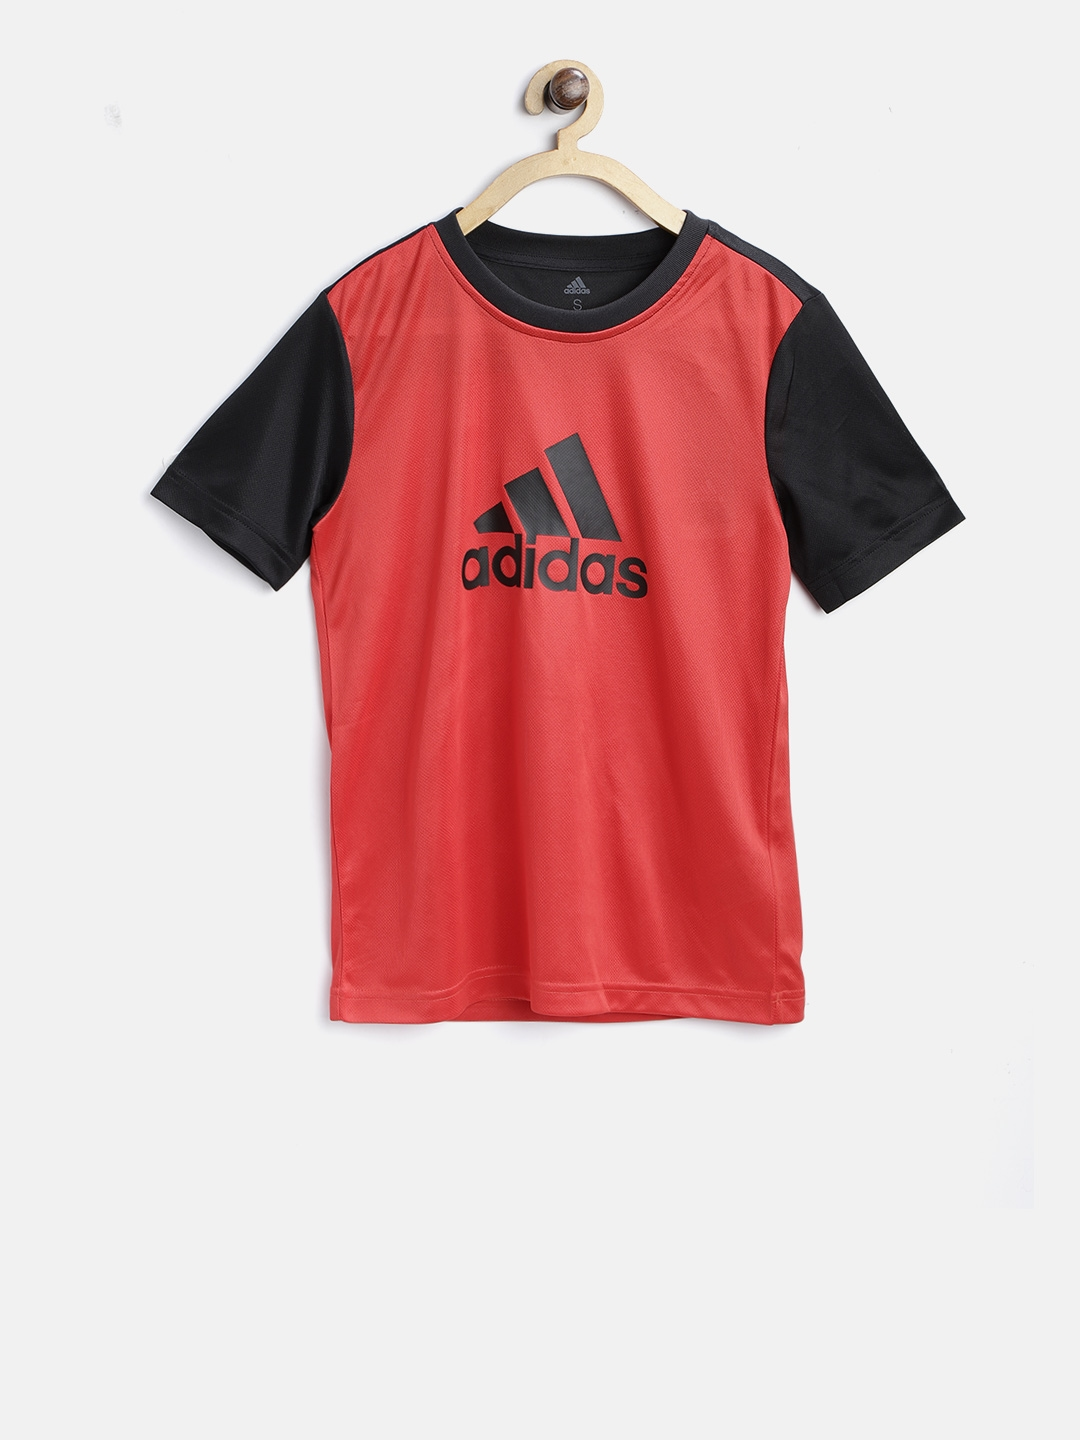 Buy Adidas Boys Red   Black Youth Training Gear Up Round Neck Jersey ... a12f5ebd71d8f